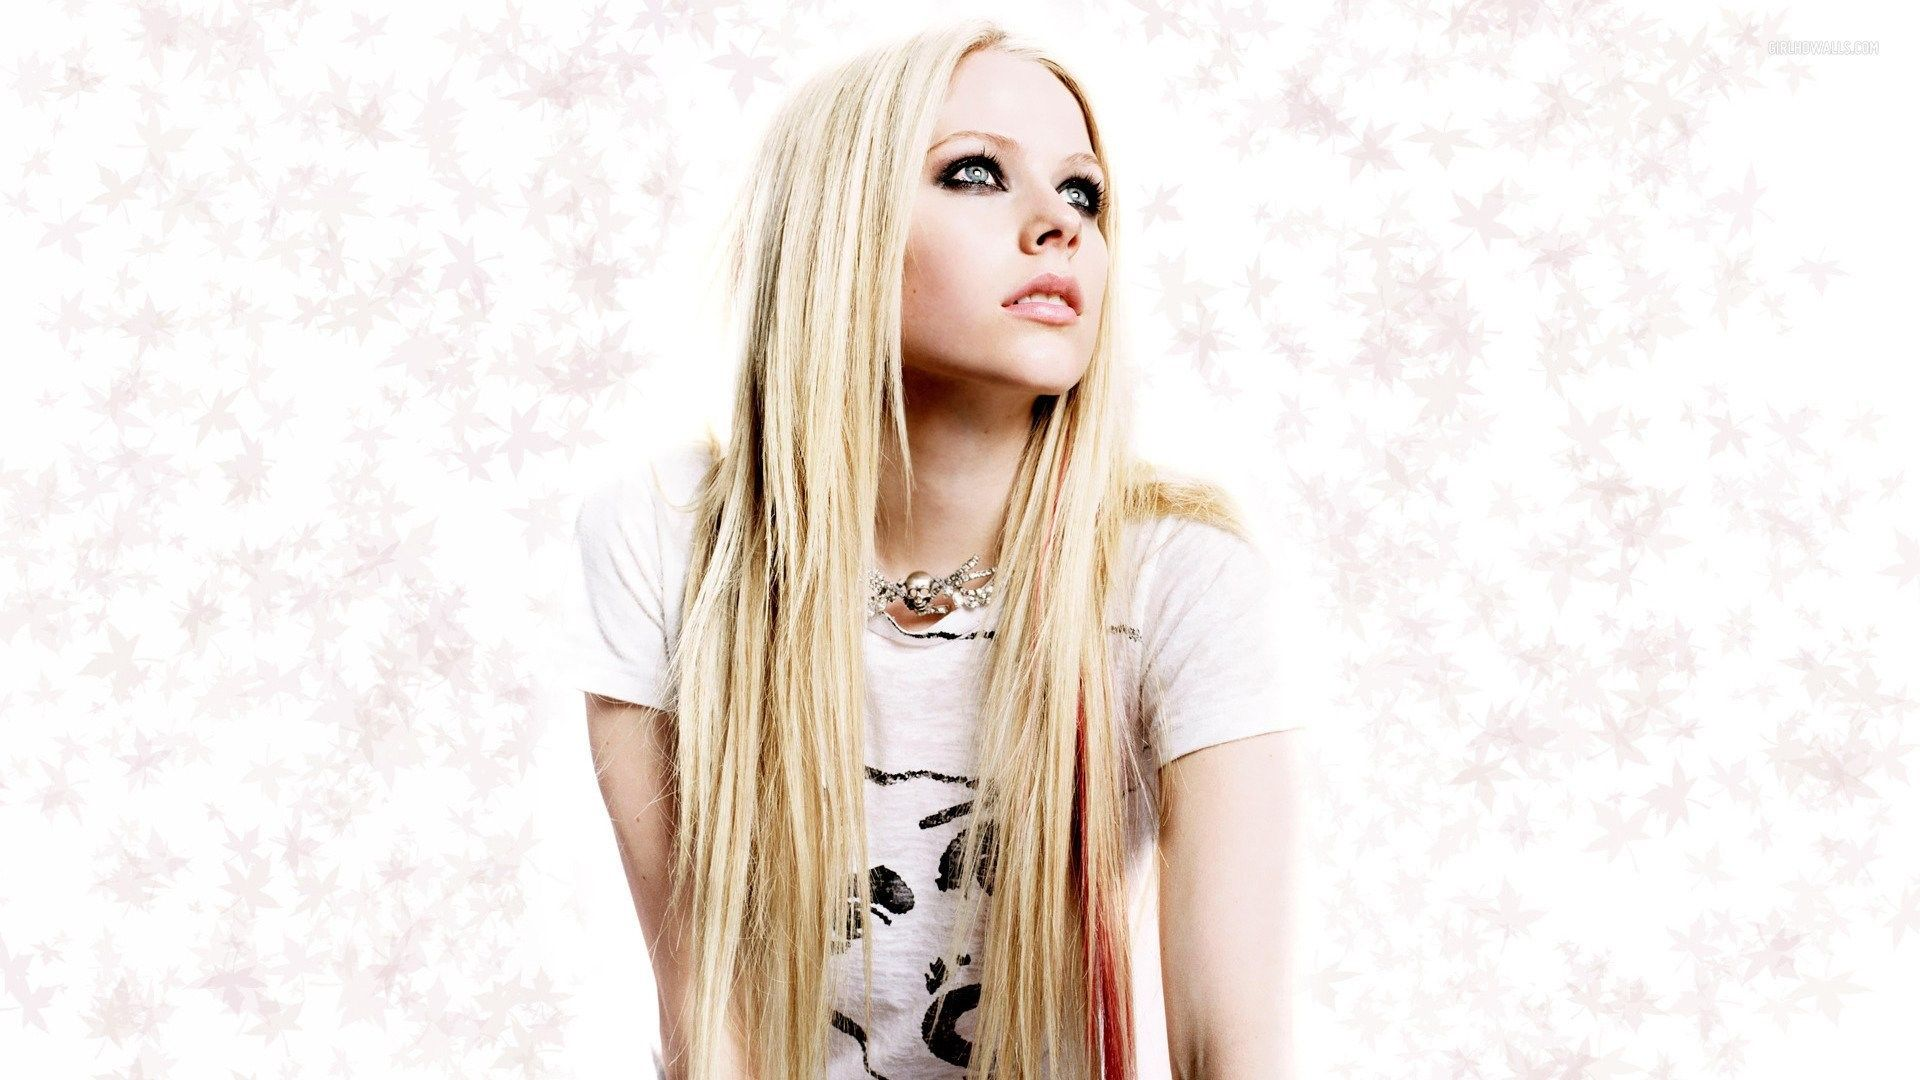 avril lavigne wallpapers 1080p high quality, 1920x1080 (272 kB)